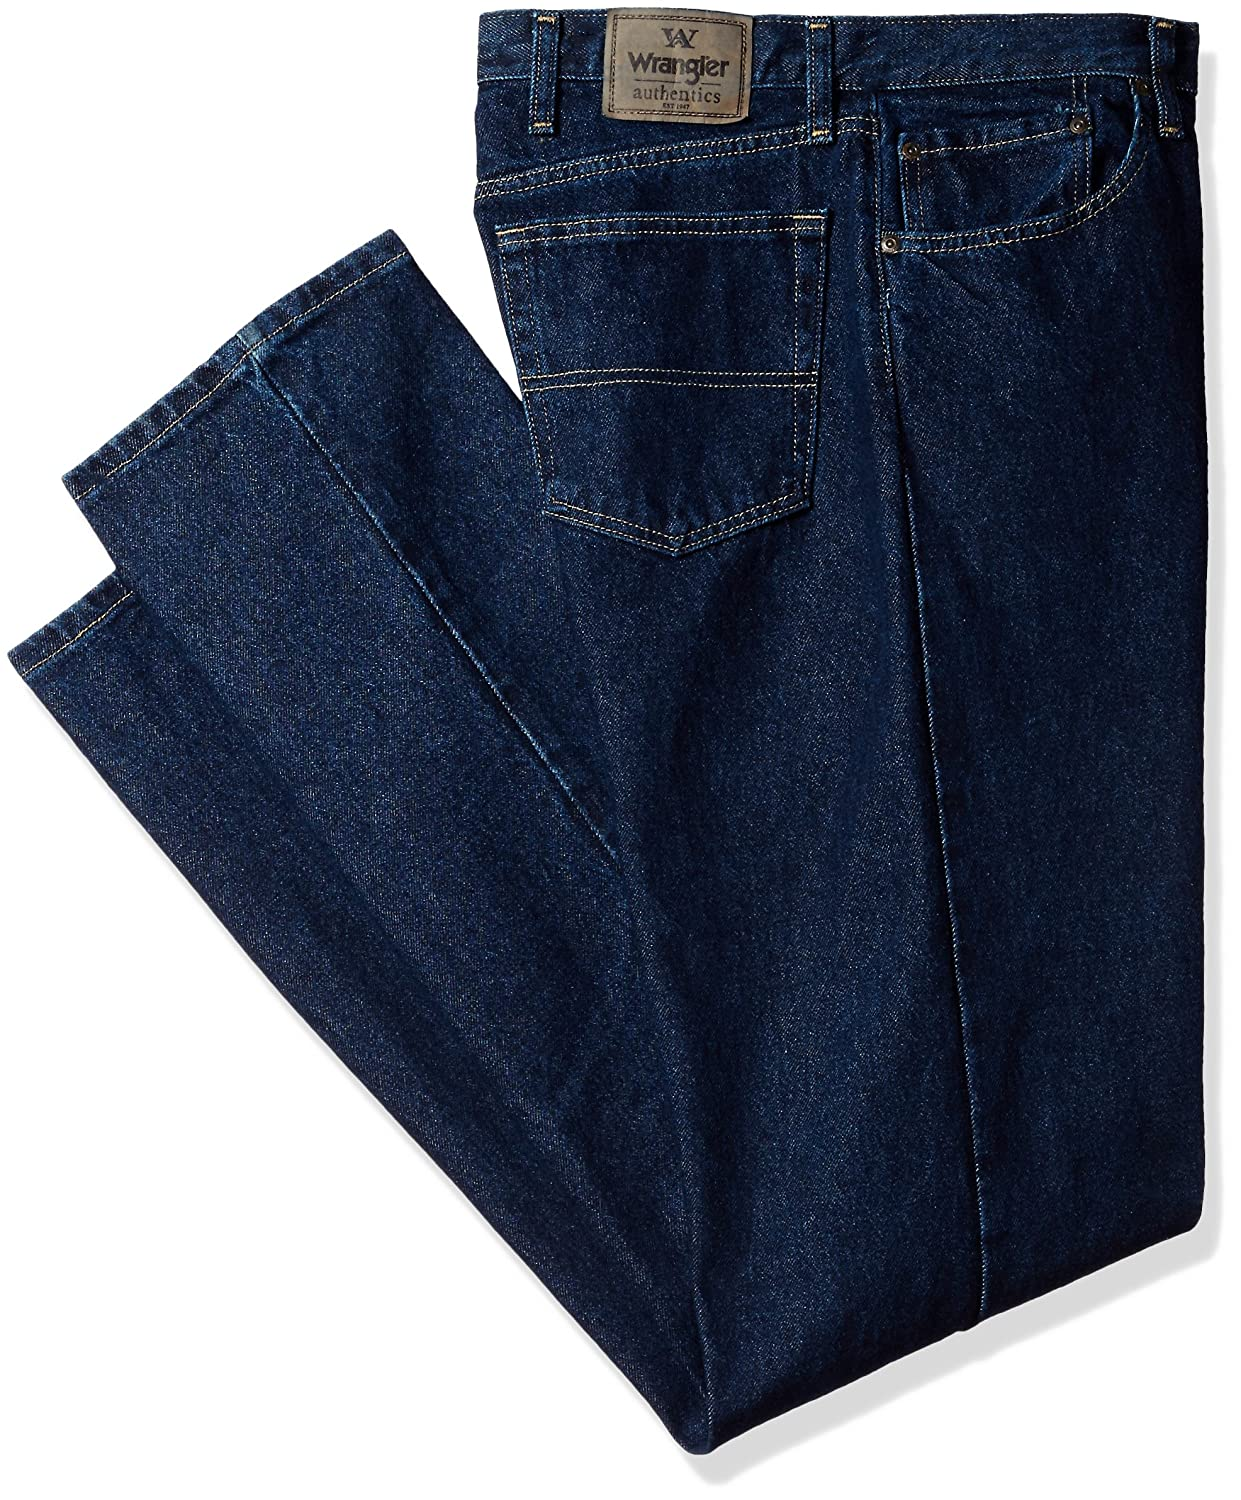 Wrangler Men's 5-Pocket Regular Fit Jean